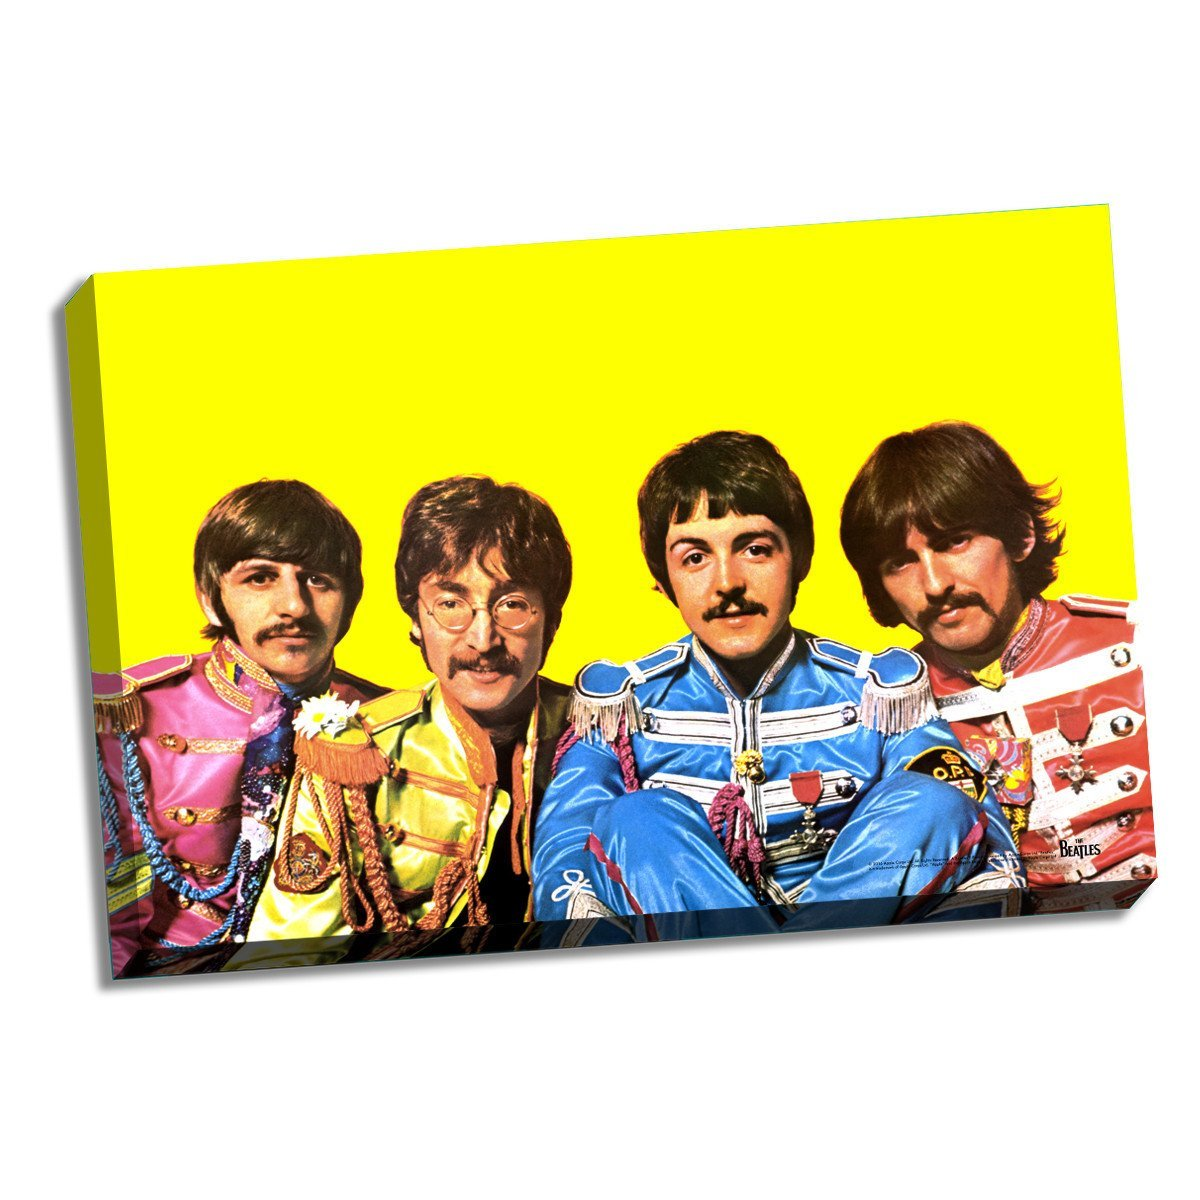 The Beatles Sgt. Pepper Group Pose Yellow Background 24 Inch X 36 Inch Stretched Canvas